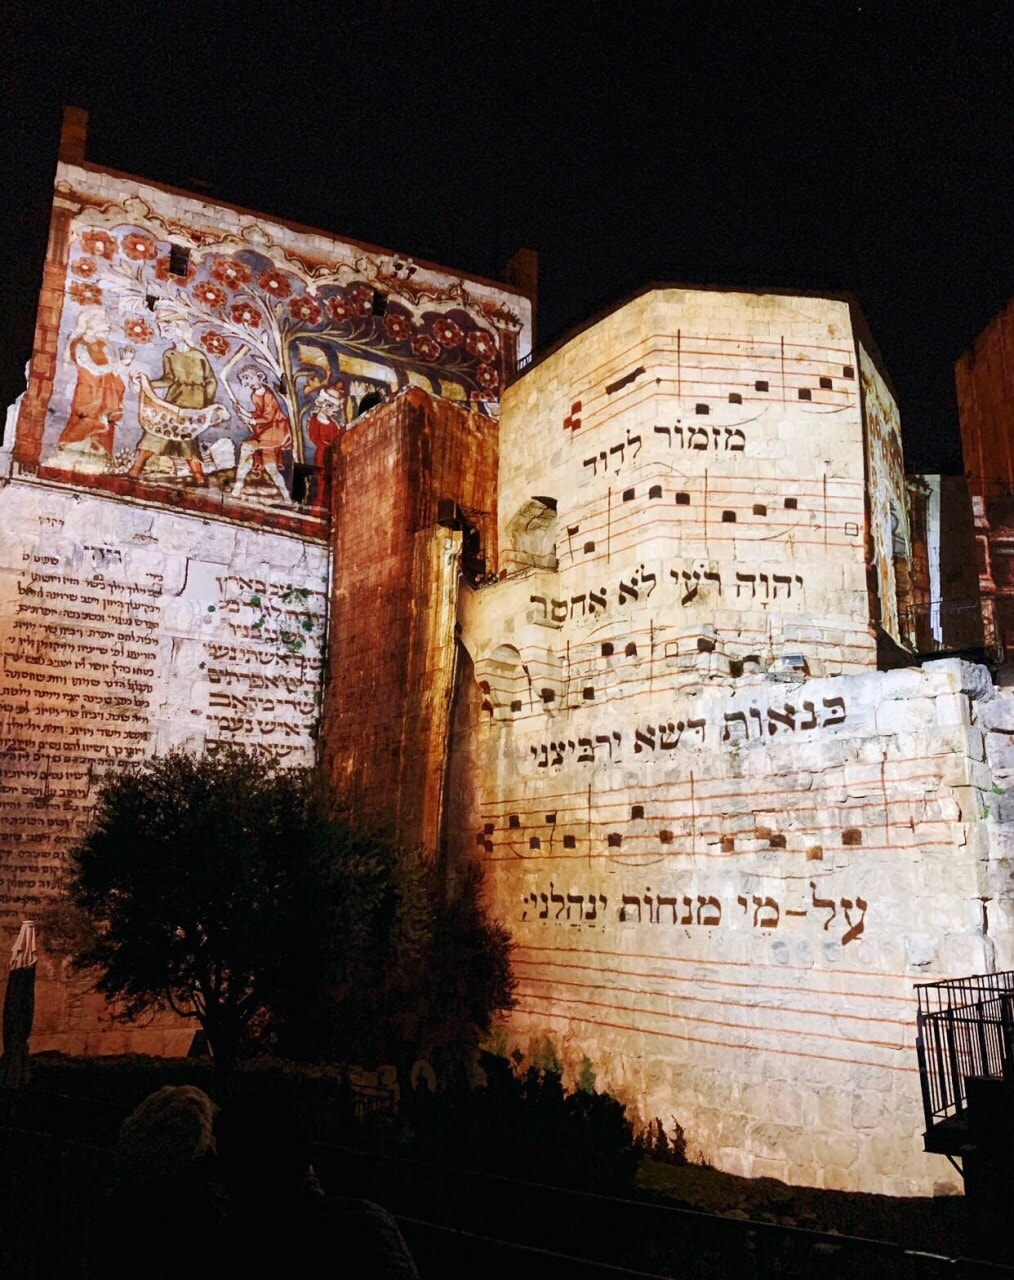 King David's Tomb Attractions - Harei Yehuda Travel Review -Travel Guide -  Trip.com